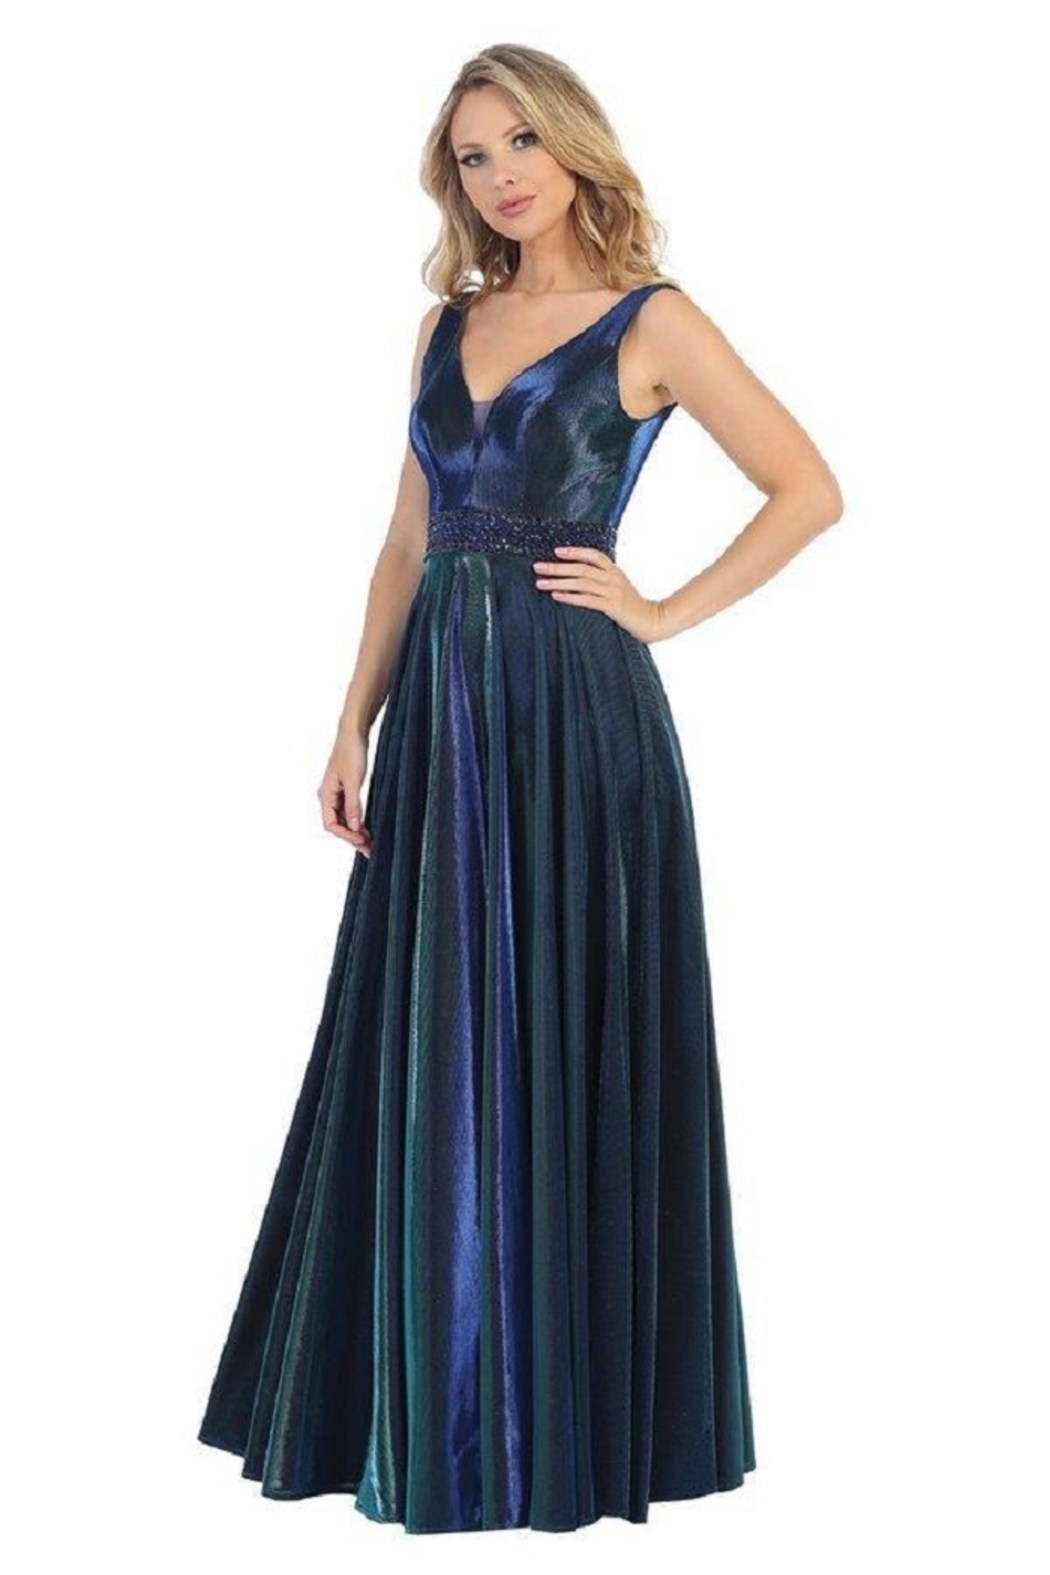 Let's Royal Blue Metallic A-Line Formal Long Dress - Main Image